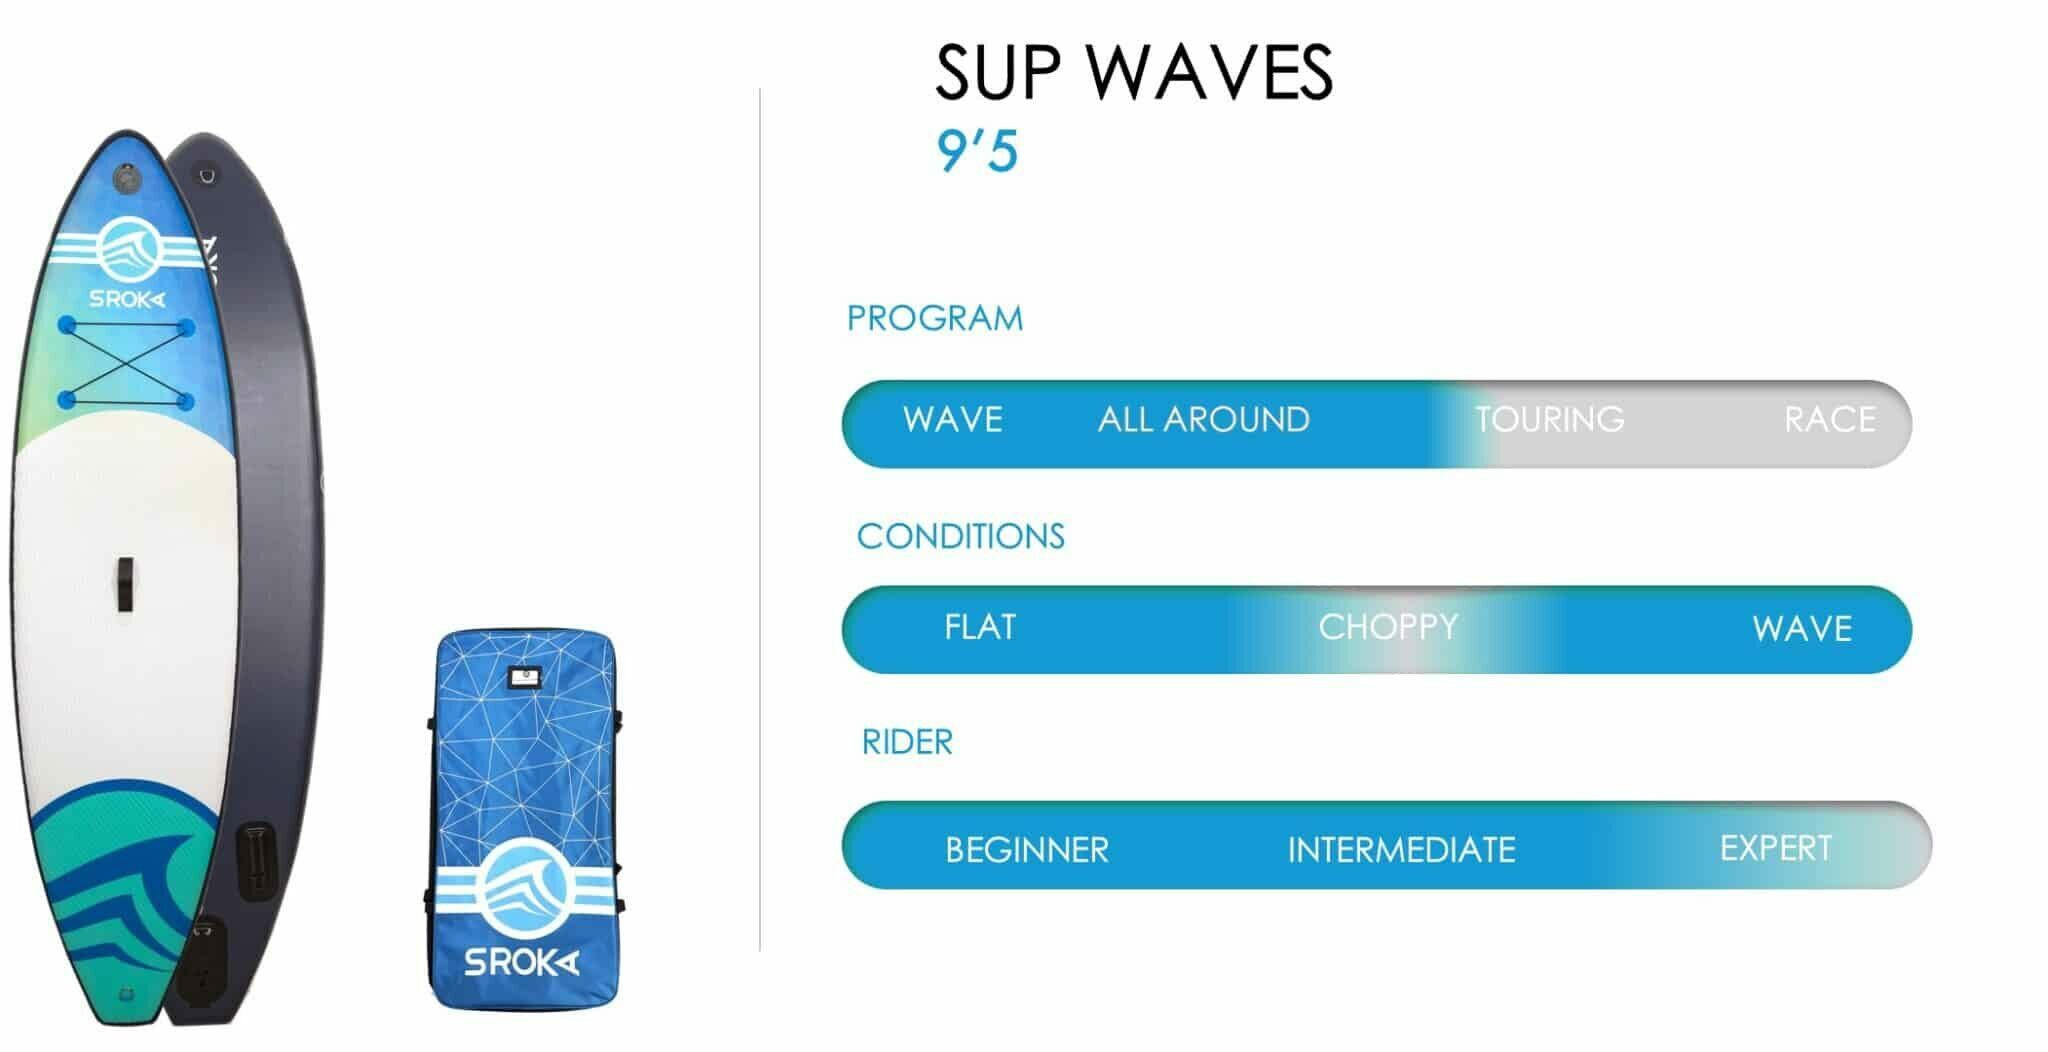 Inflatable SUP 9'5 Waves